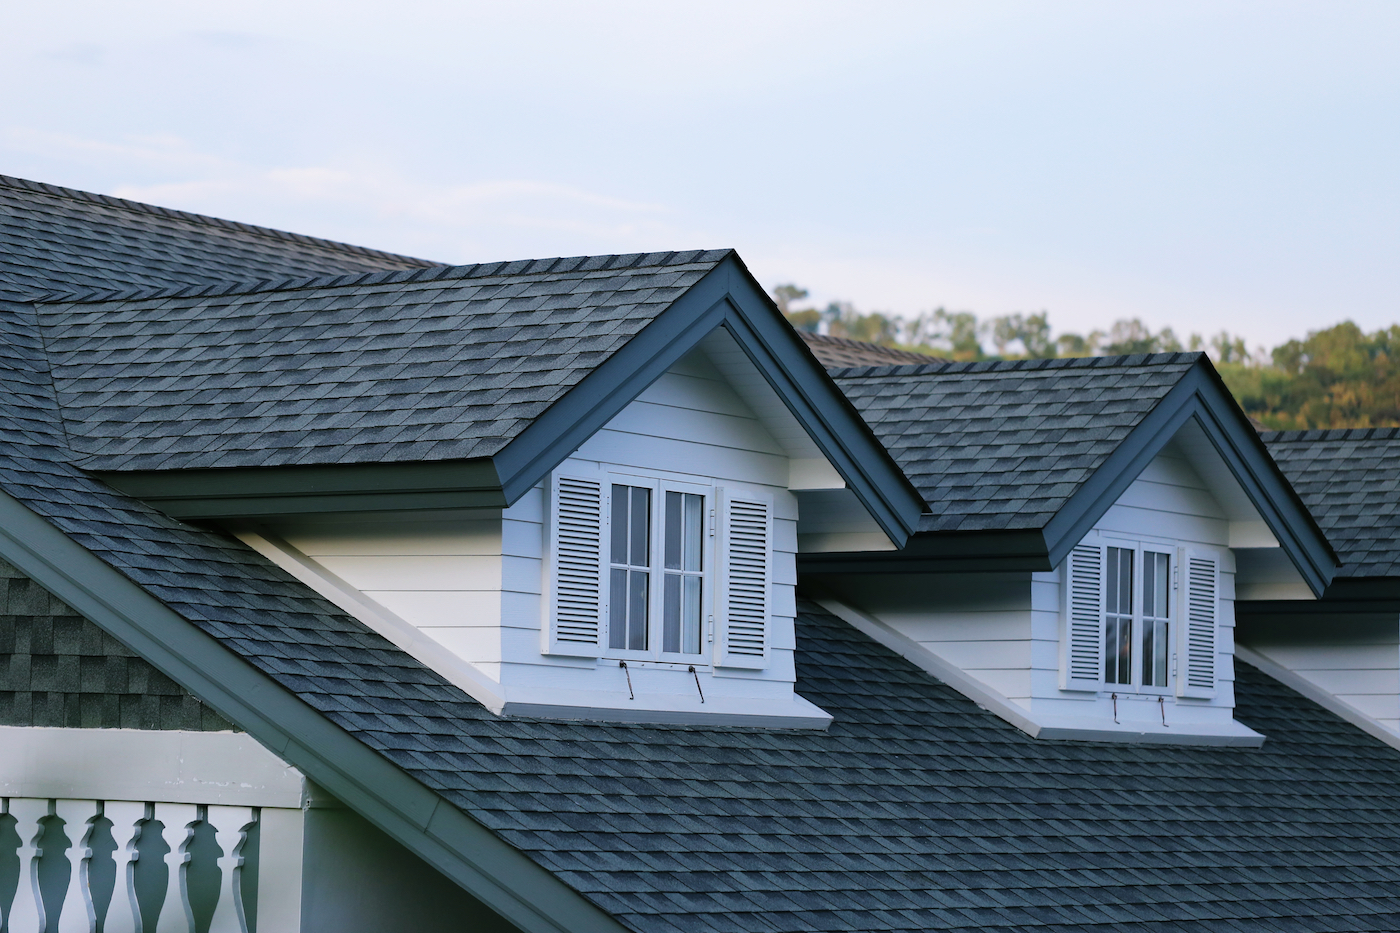 Roof Replacement: Upgrade Your Houston Roof In Time For The Holidays